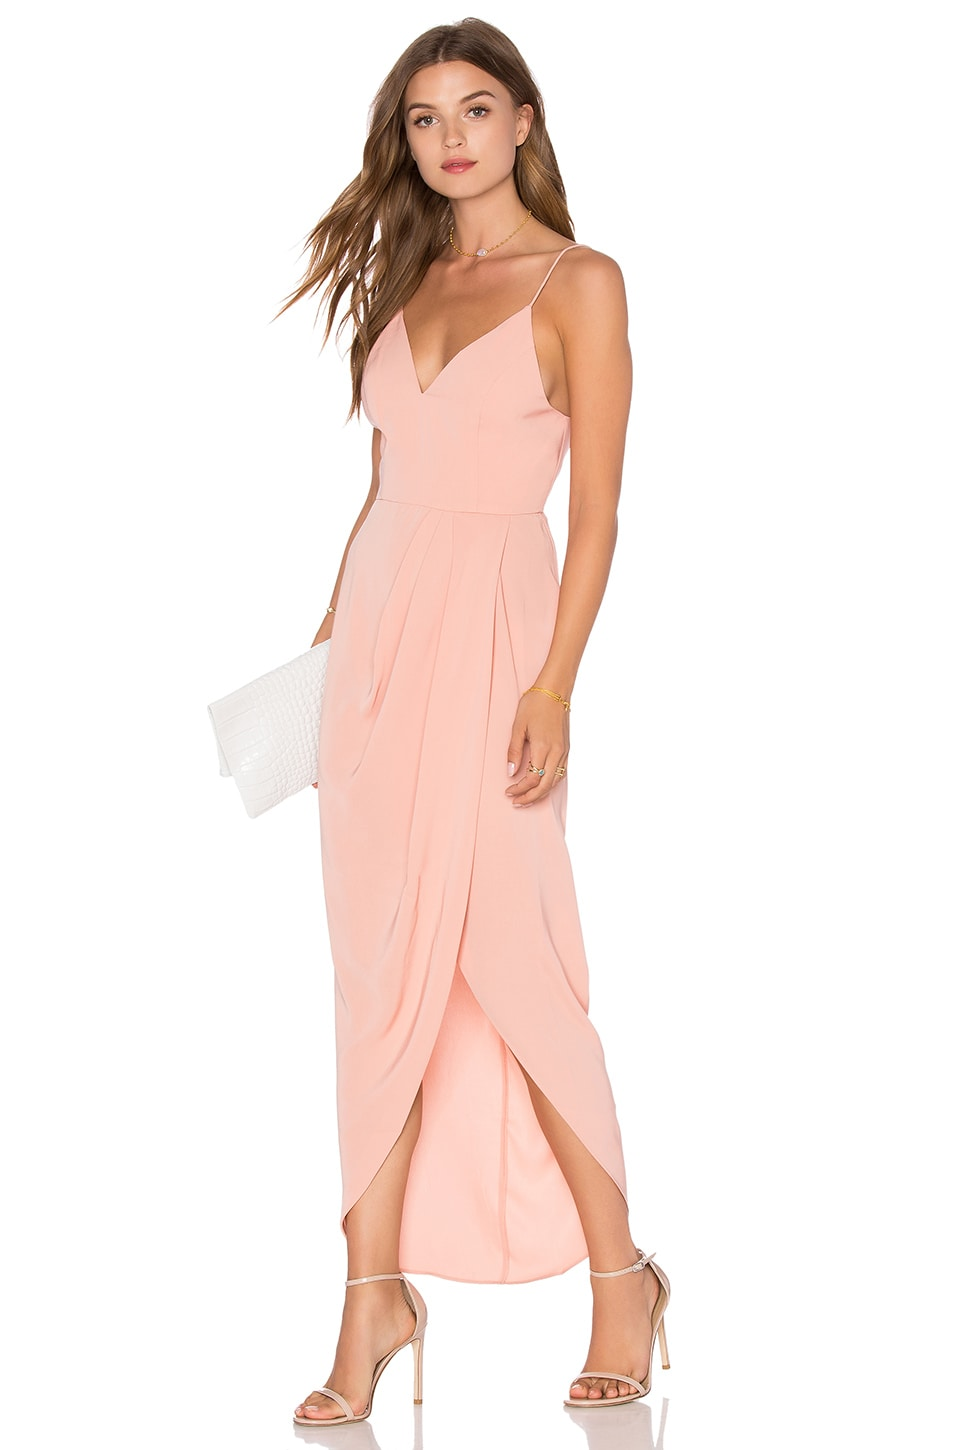 Shona Joy Cocktail Draped Dress in Dusty Pink | REVOLVE